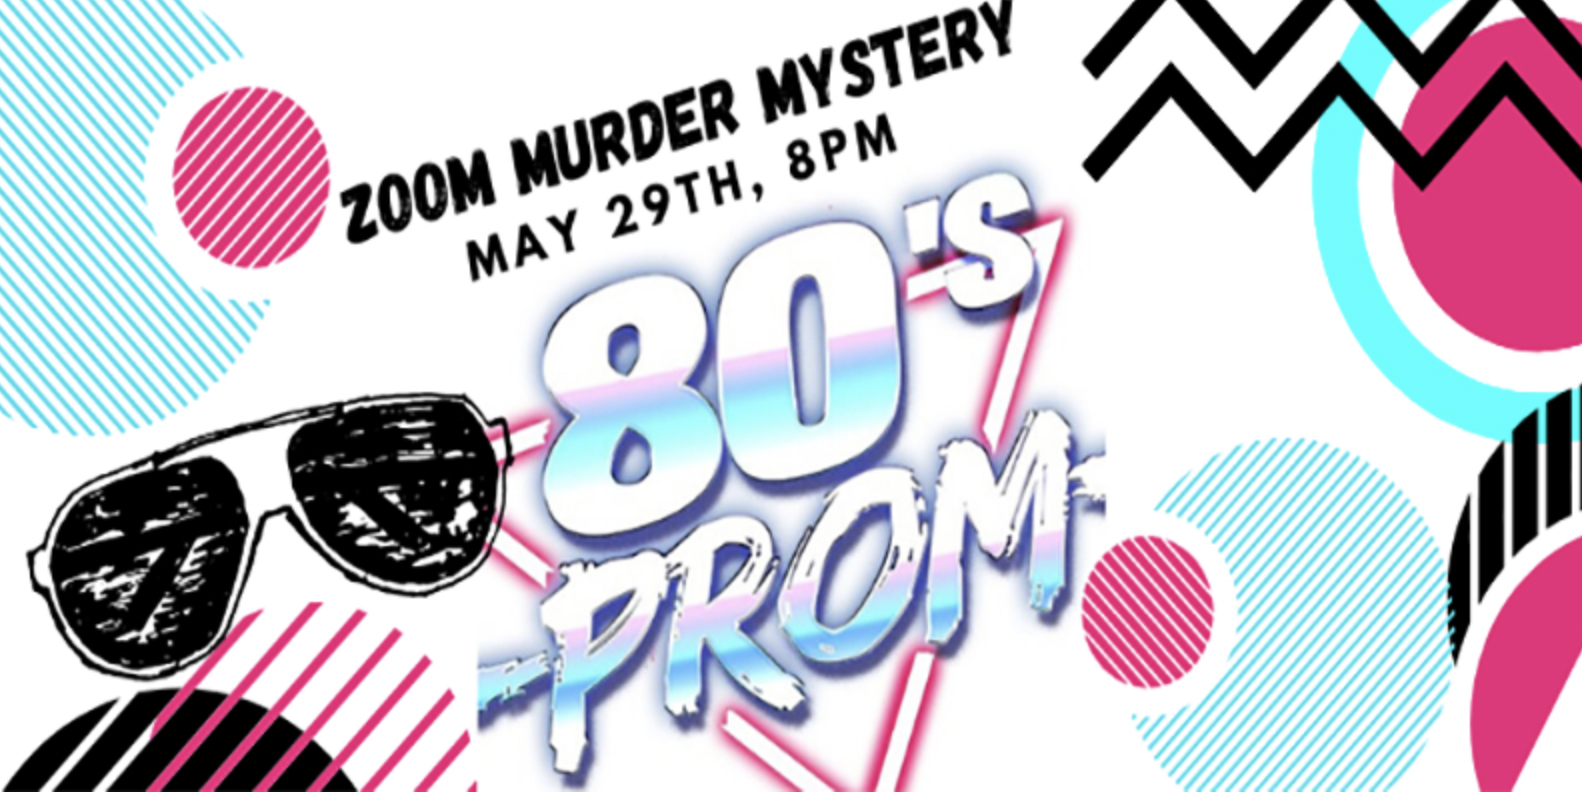 Zoom Murder Mystery Party: 80's Prom Night Gone Wrong!